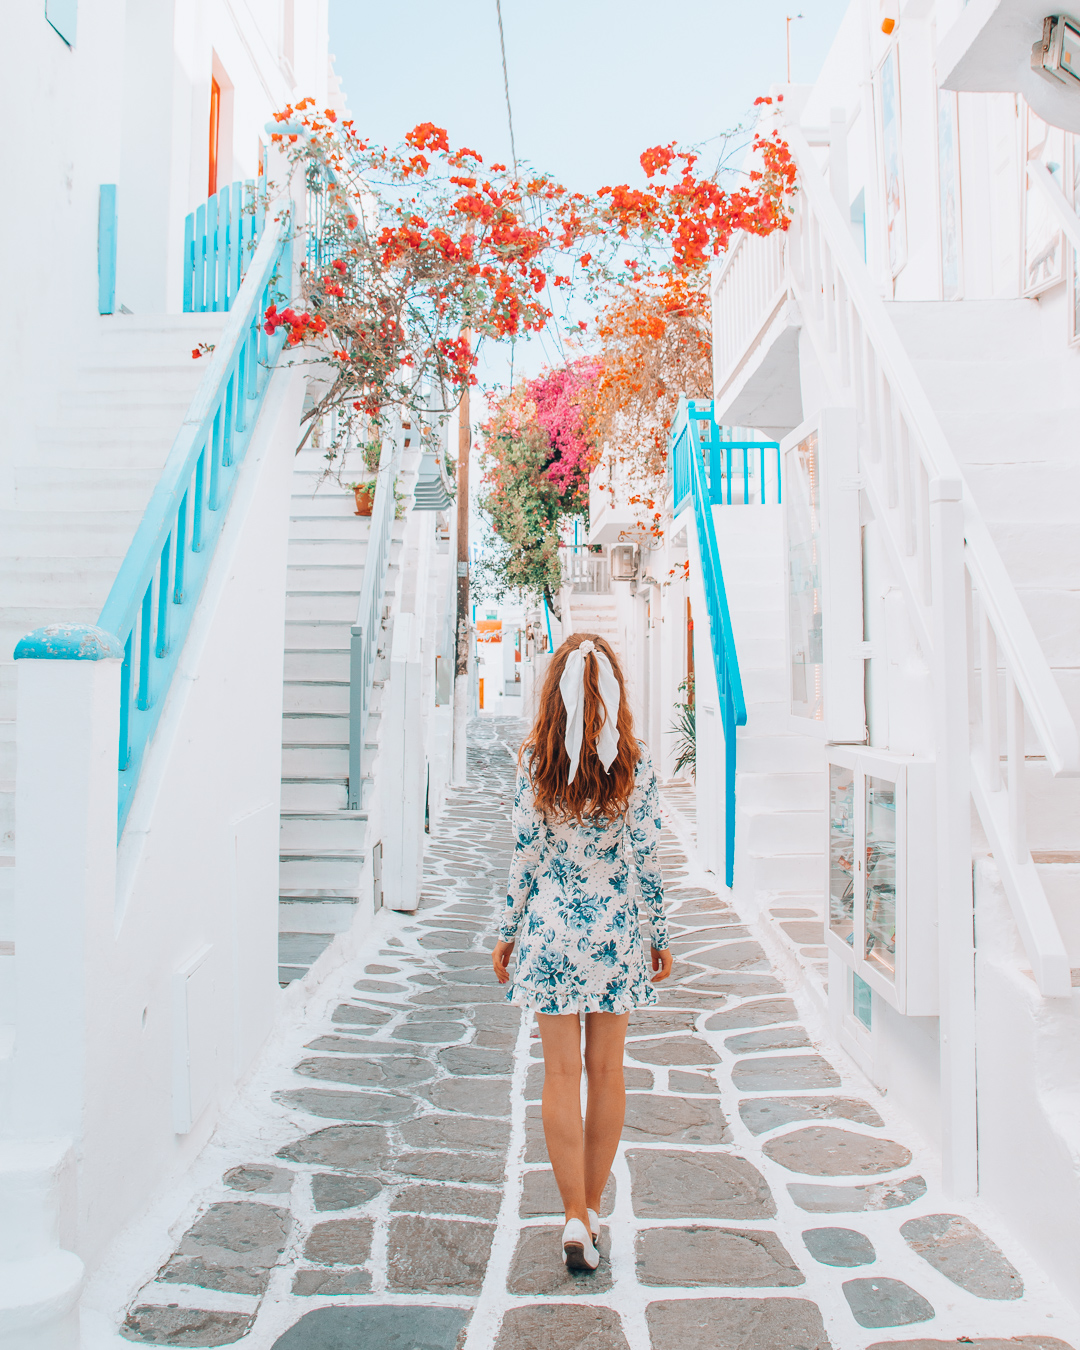 Girl walking in a colourful street